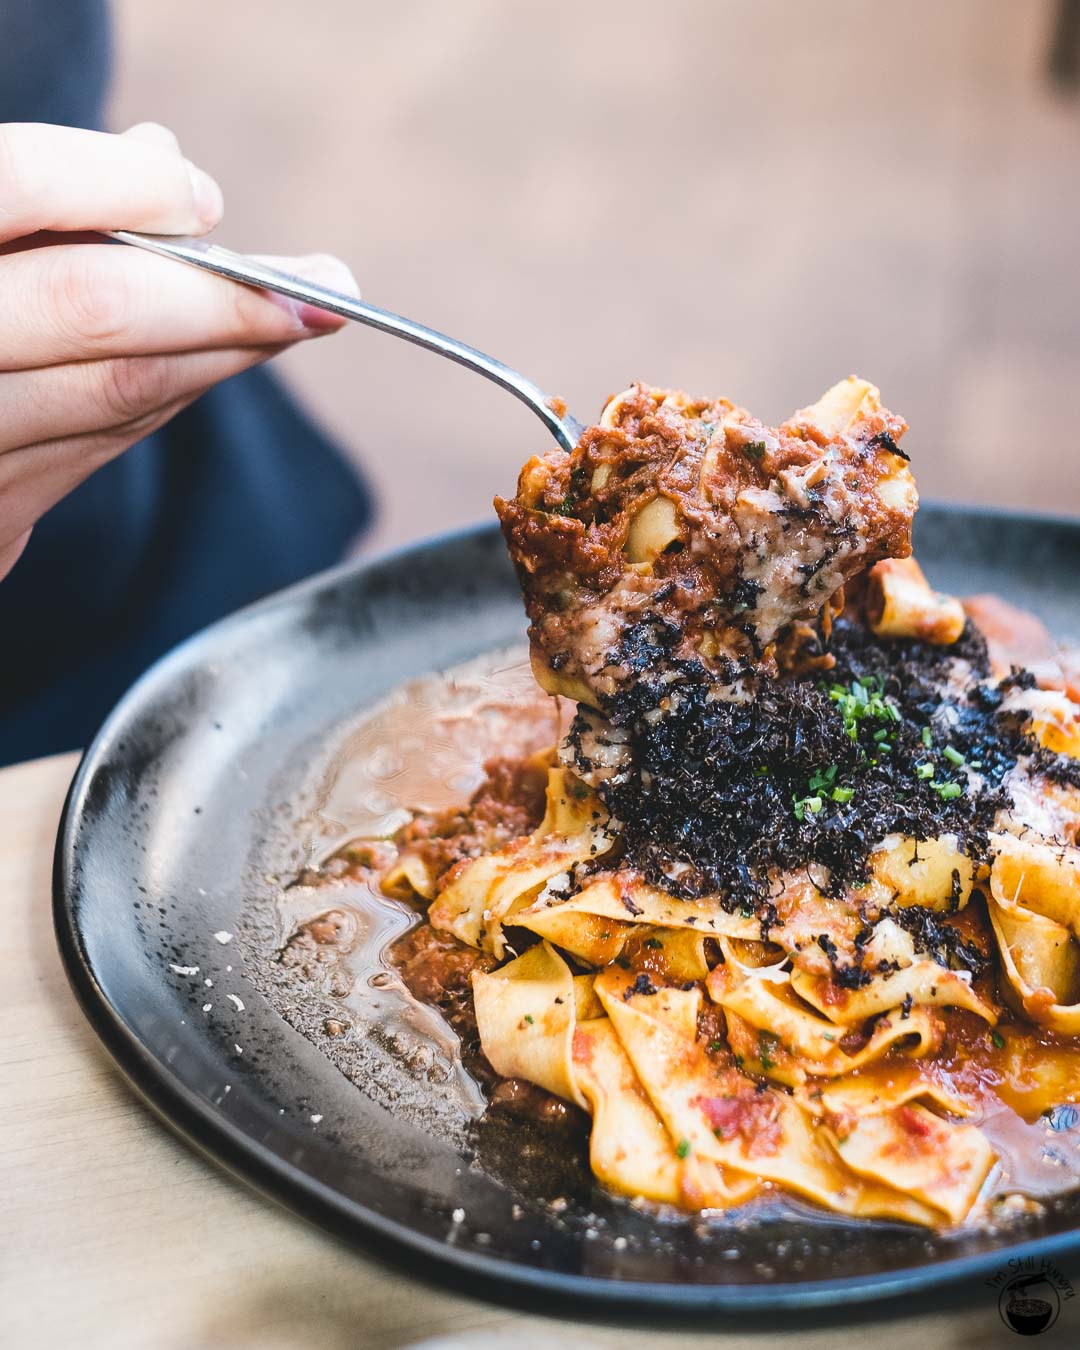 Devon Cafe Surry Hills Ragu alla bolognese: egg papparedelle, slow cooked meat sauce, grana padano